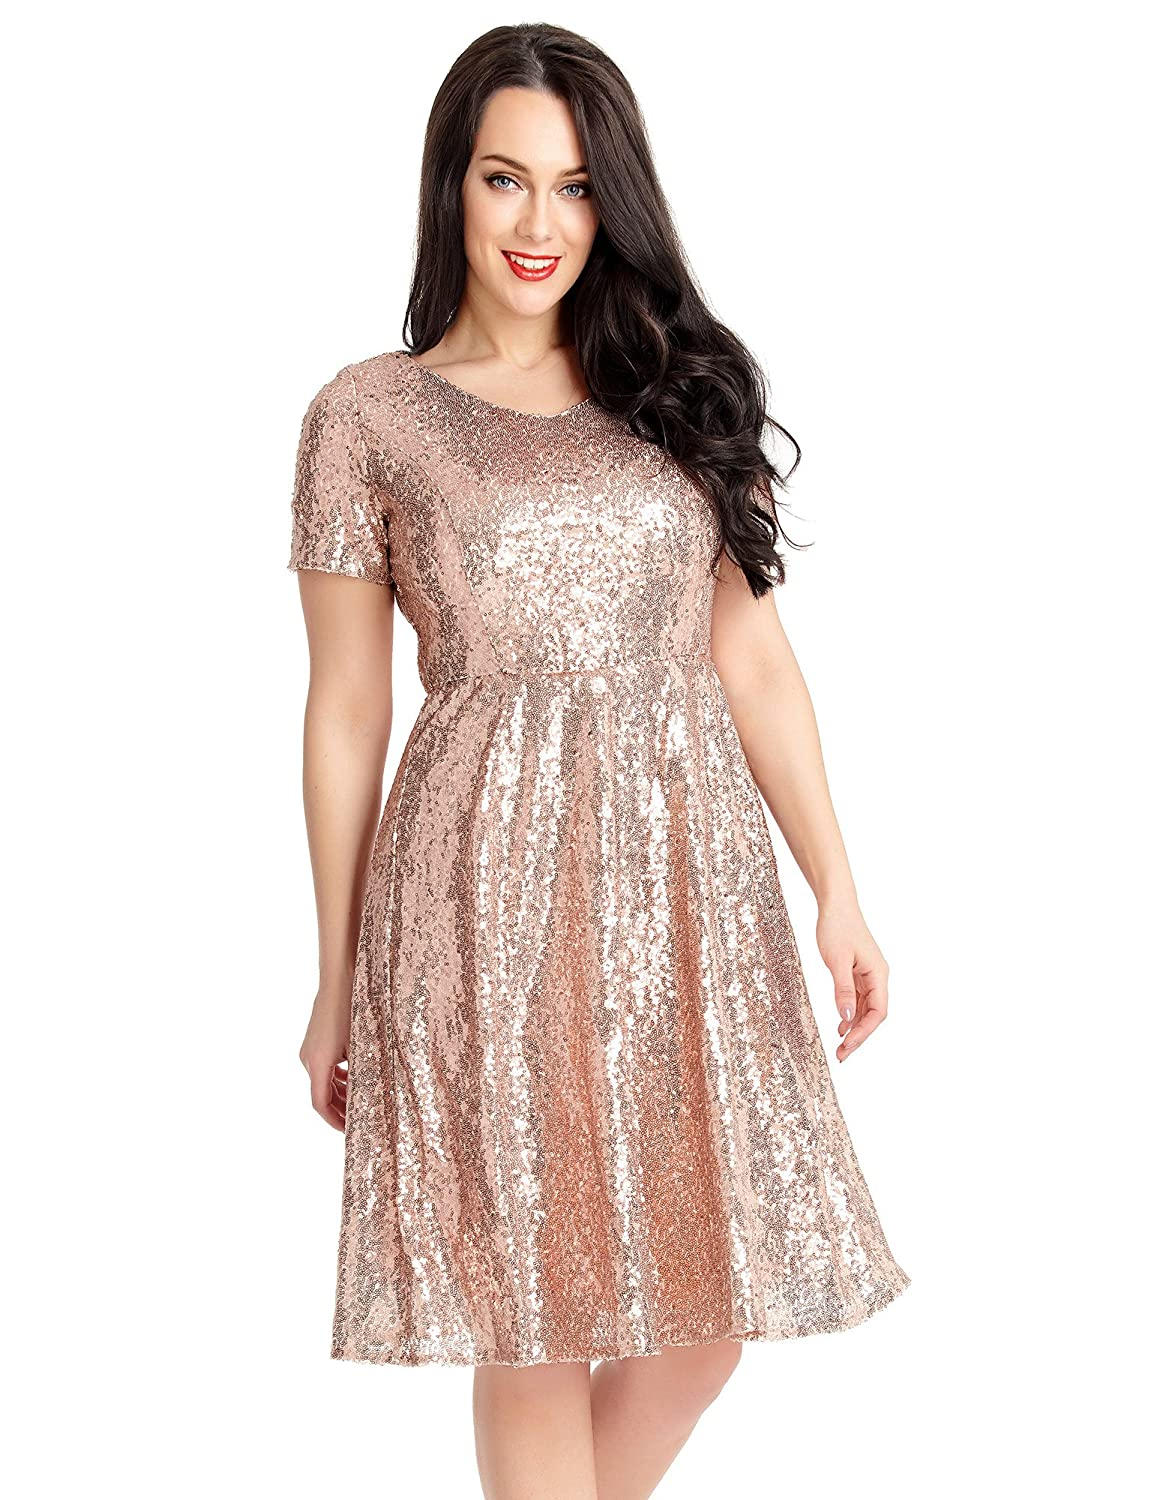 Grapent Women\'s Plus Size Sequin Cocktail Sheath Short Dress Bodycon ...